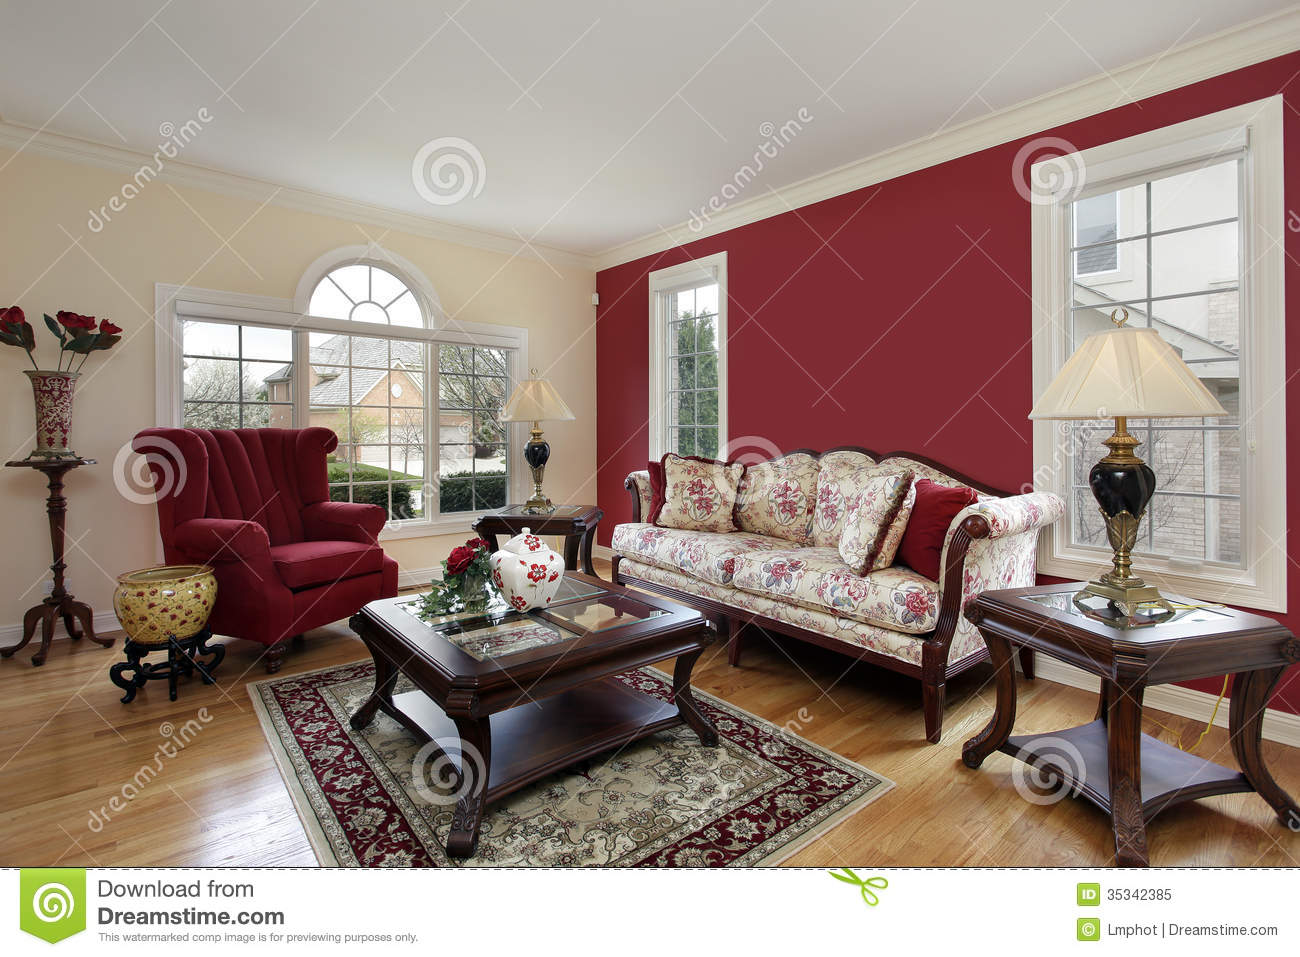 Red Paint In Living Room drmimius – Red Walls Living Room